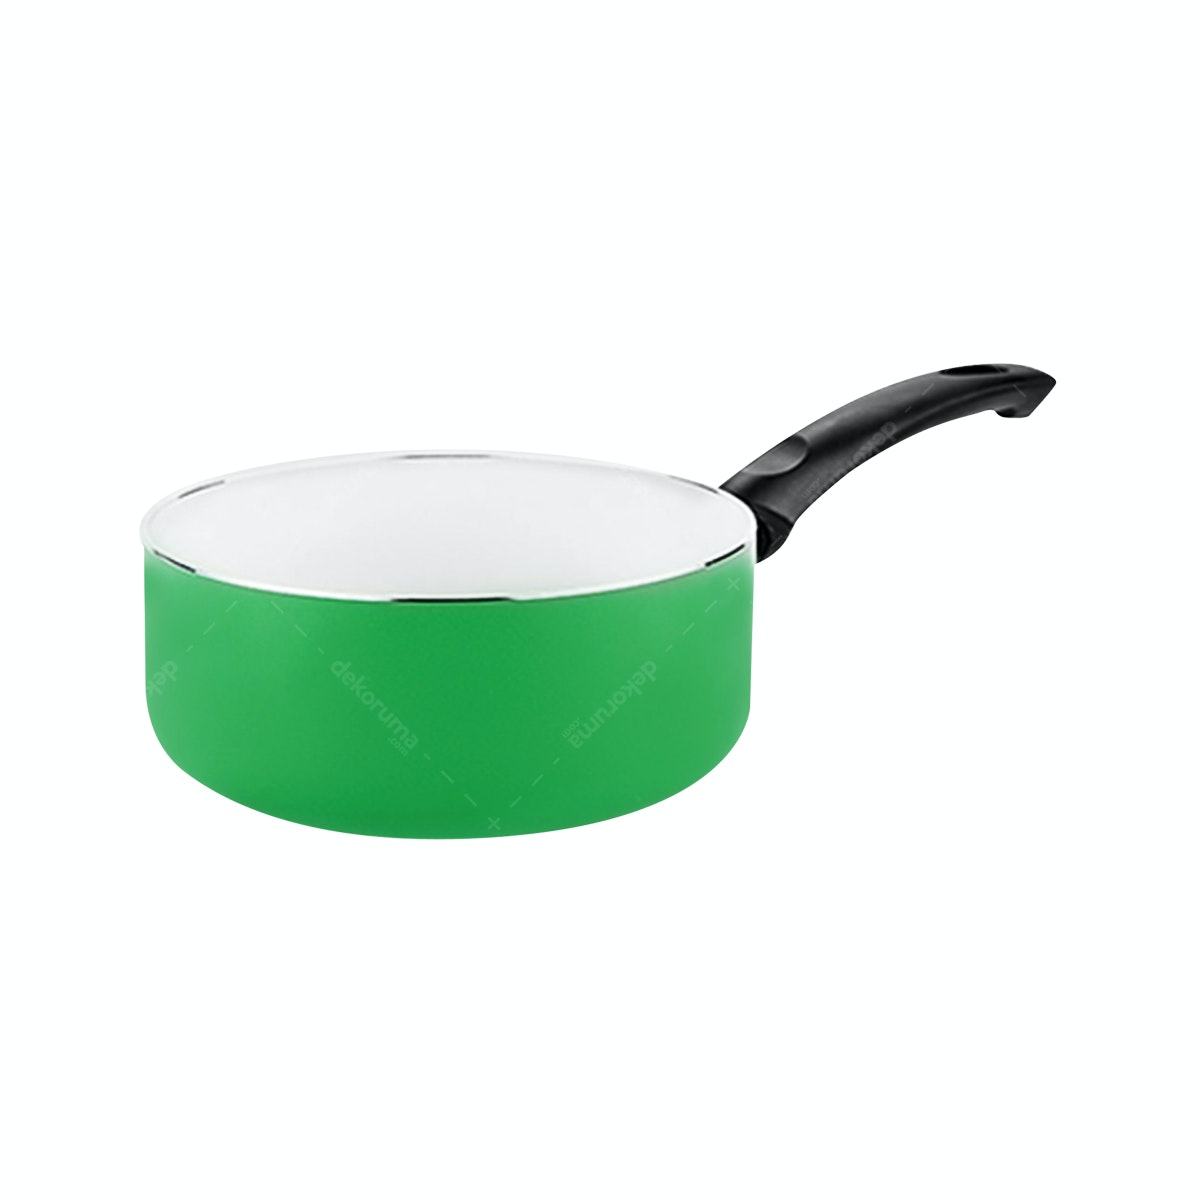 Fincook Ceratinum Ceramic Sauce Pan 16 cm CSP1603 (Green)